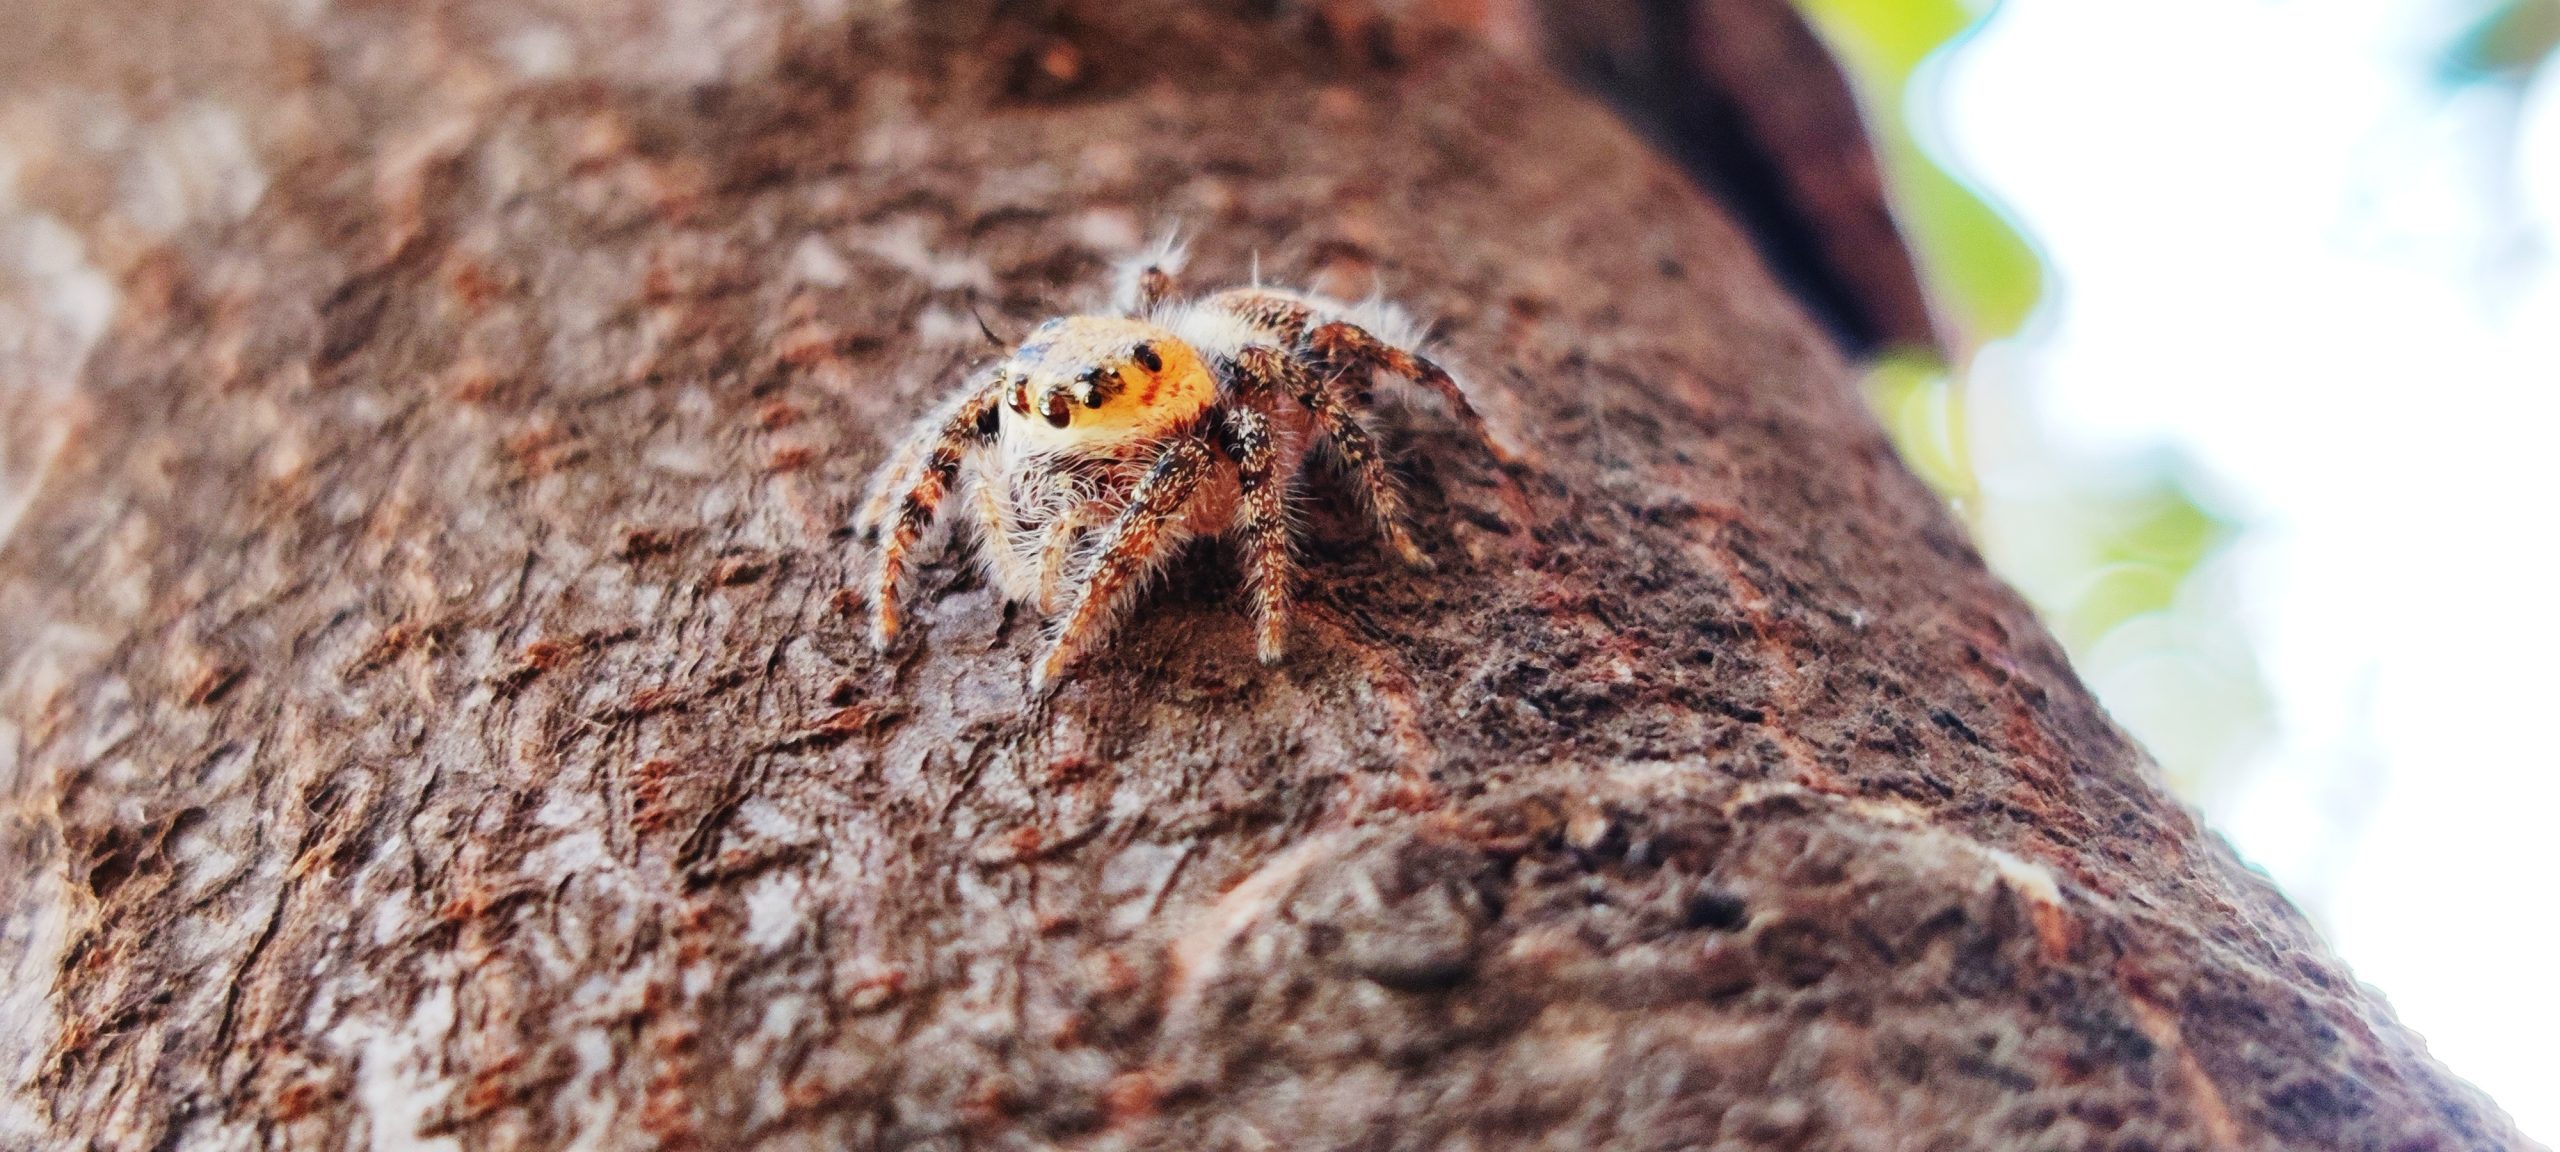 Spider on branch of tree